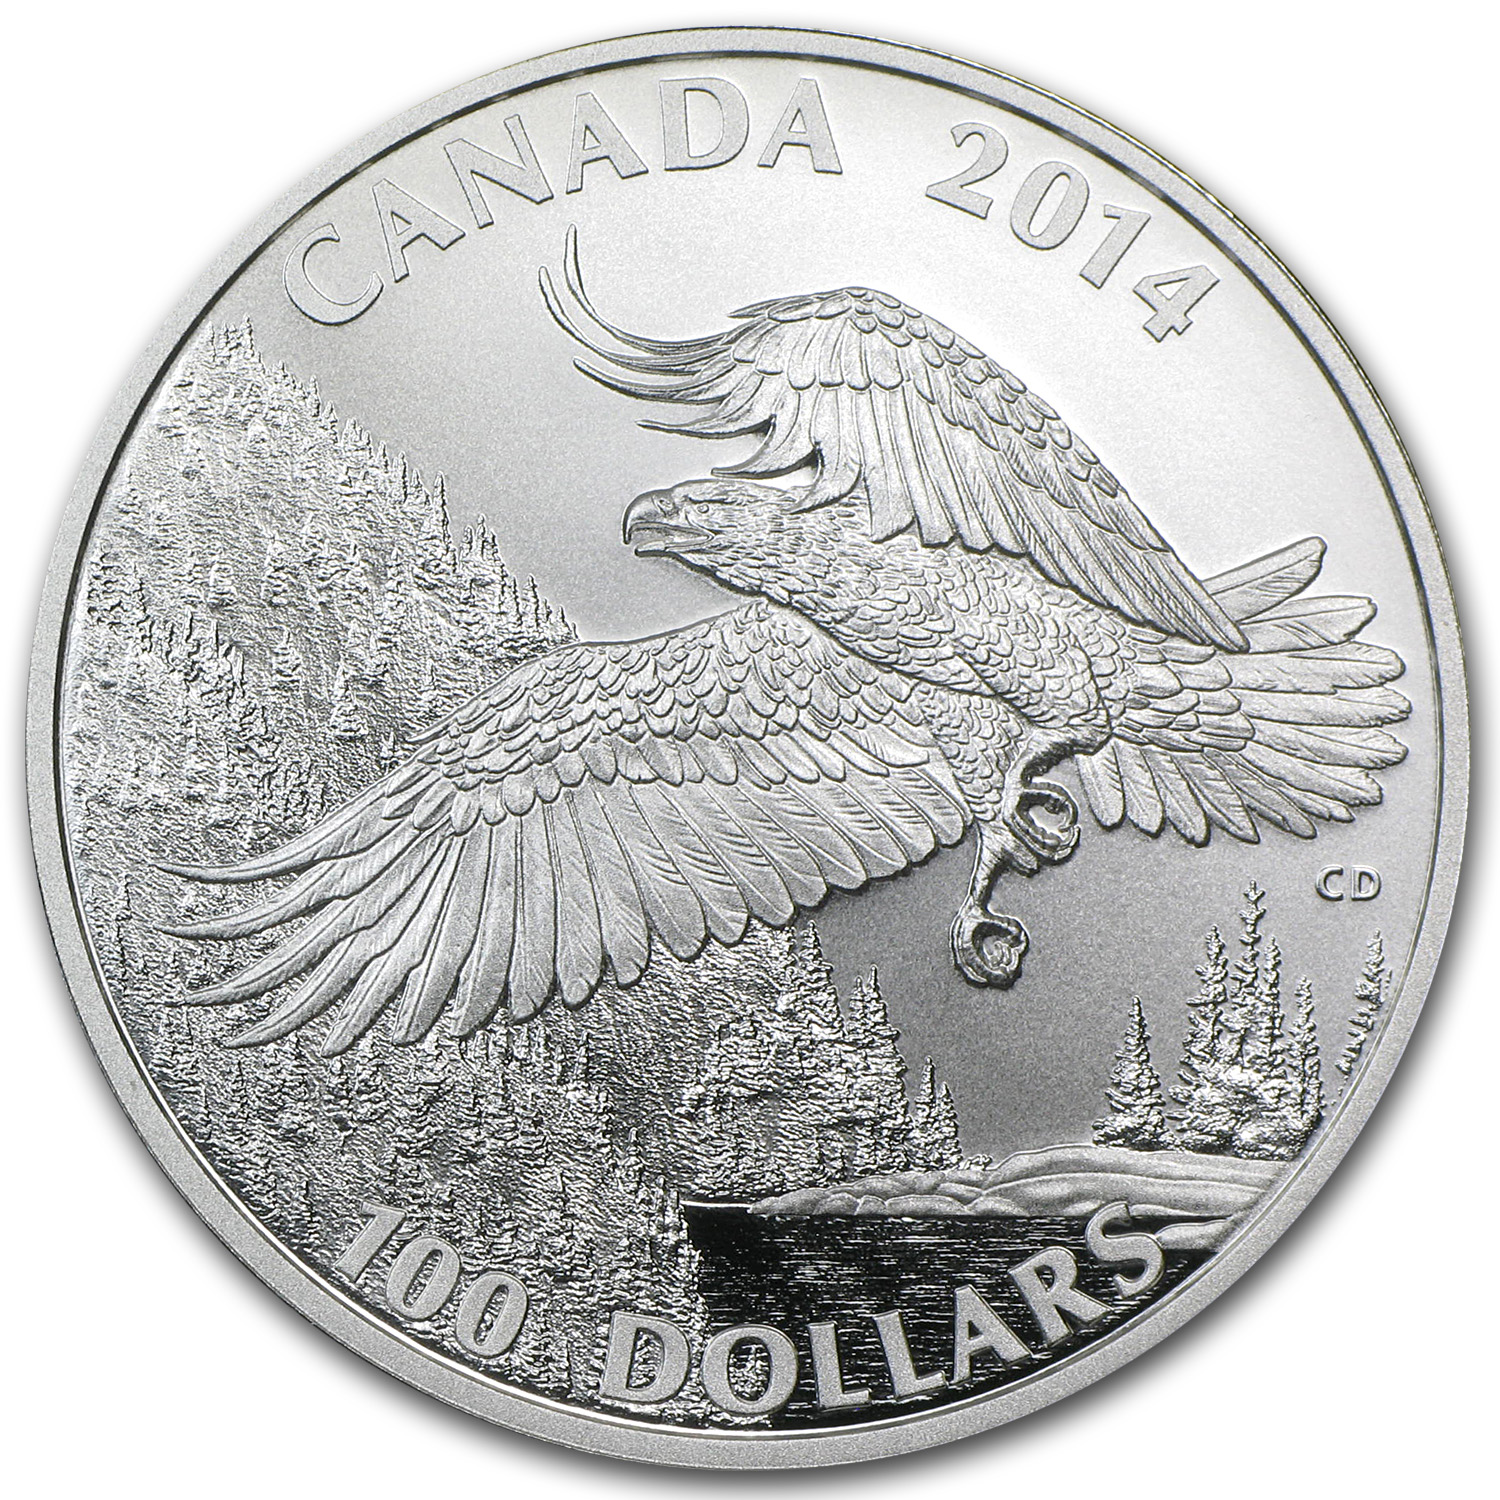 2014 Canada 1 oz Silver $100 Majestic Bald Eagle